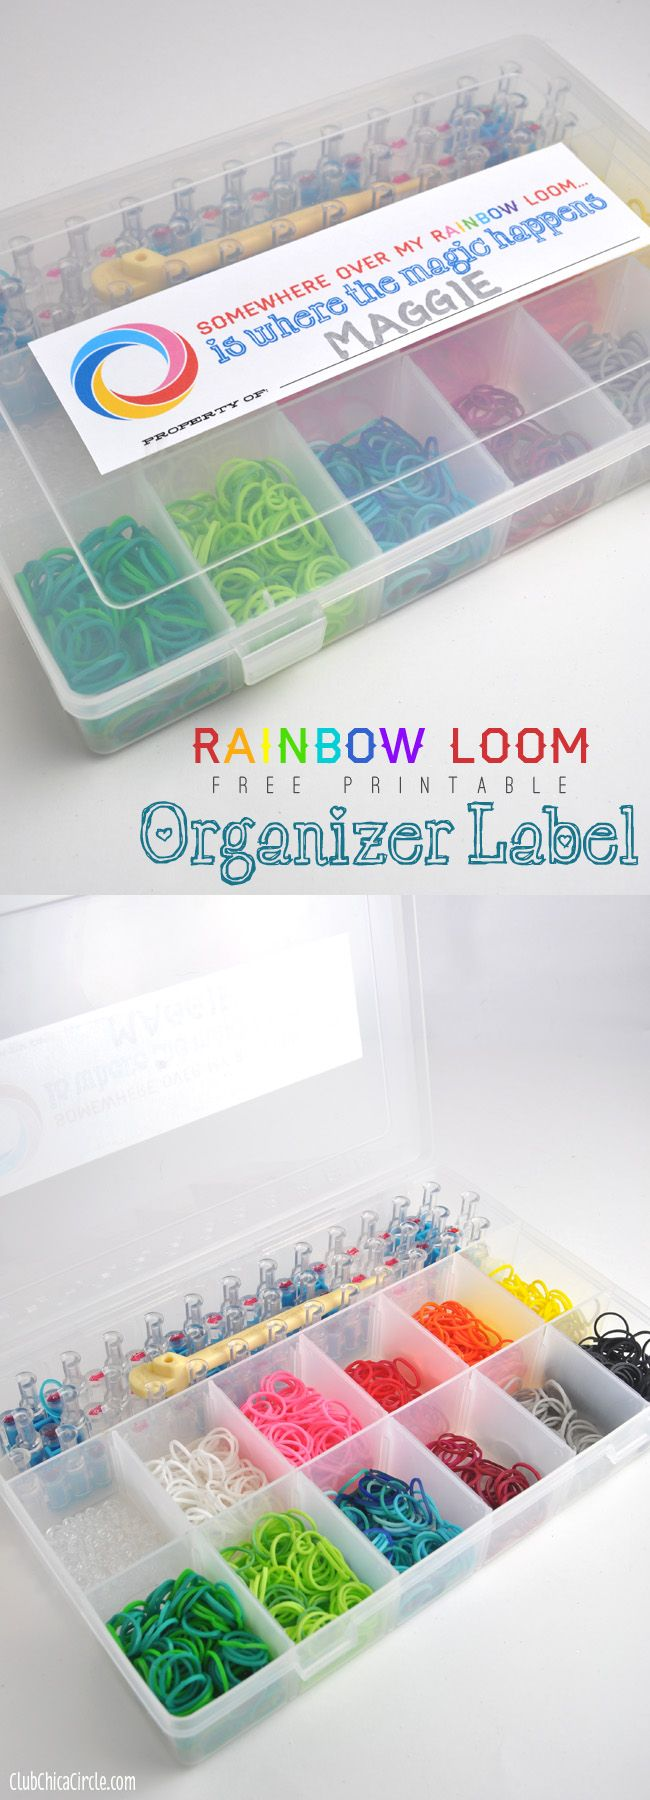 Rainbow Loom Organizer Free Printable Labels   Tween Craft Ideas for Mom and Daughter